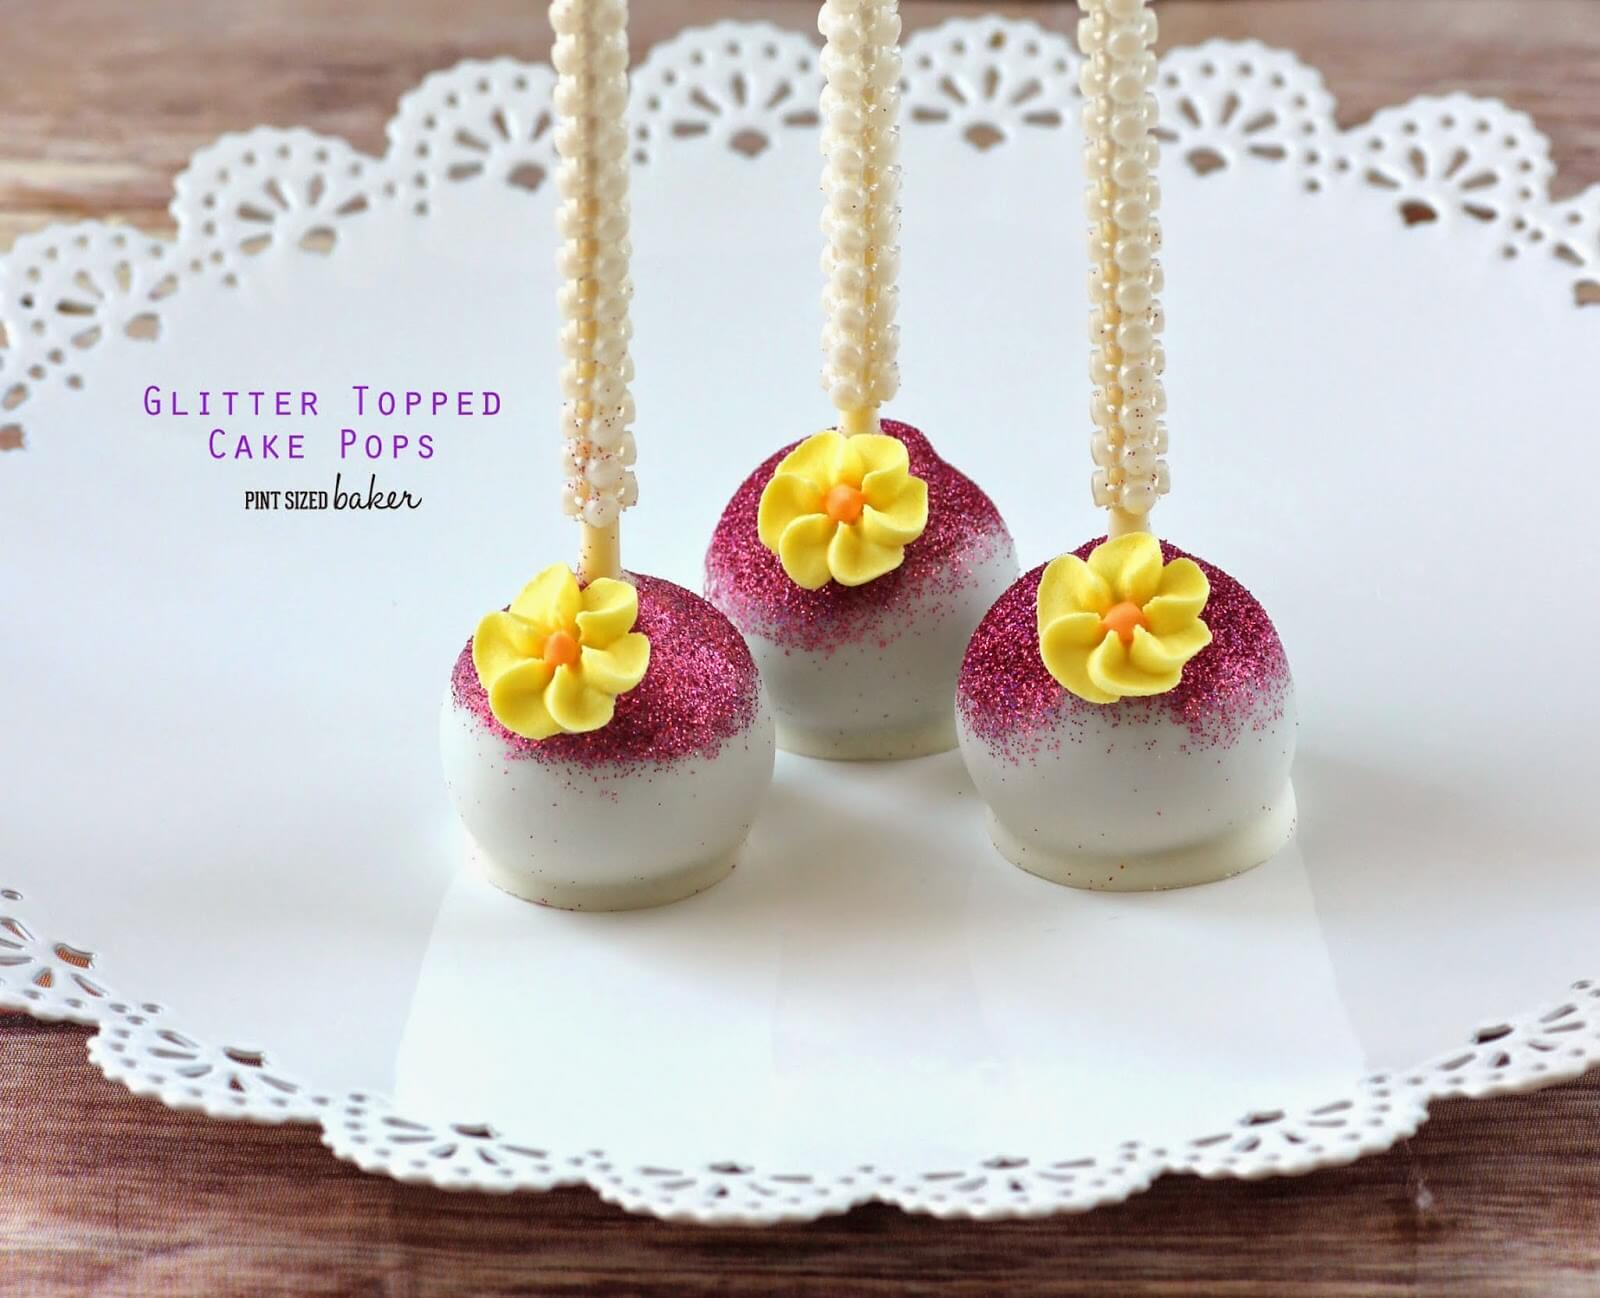 How to Make Glitter Topped Cake Pops